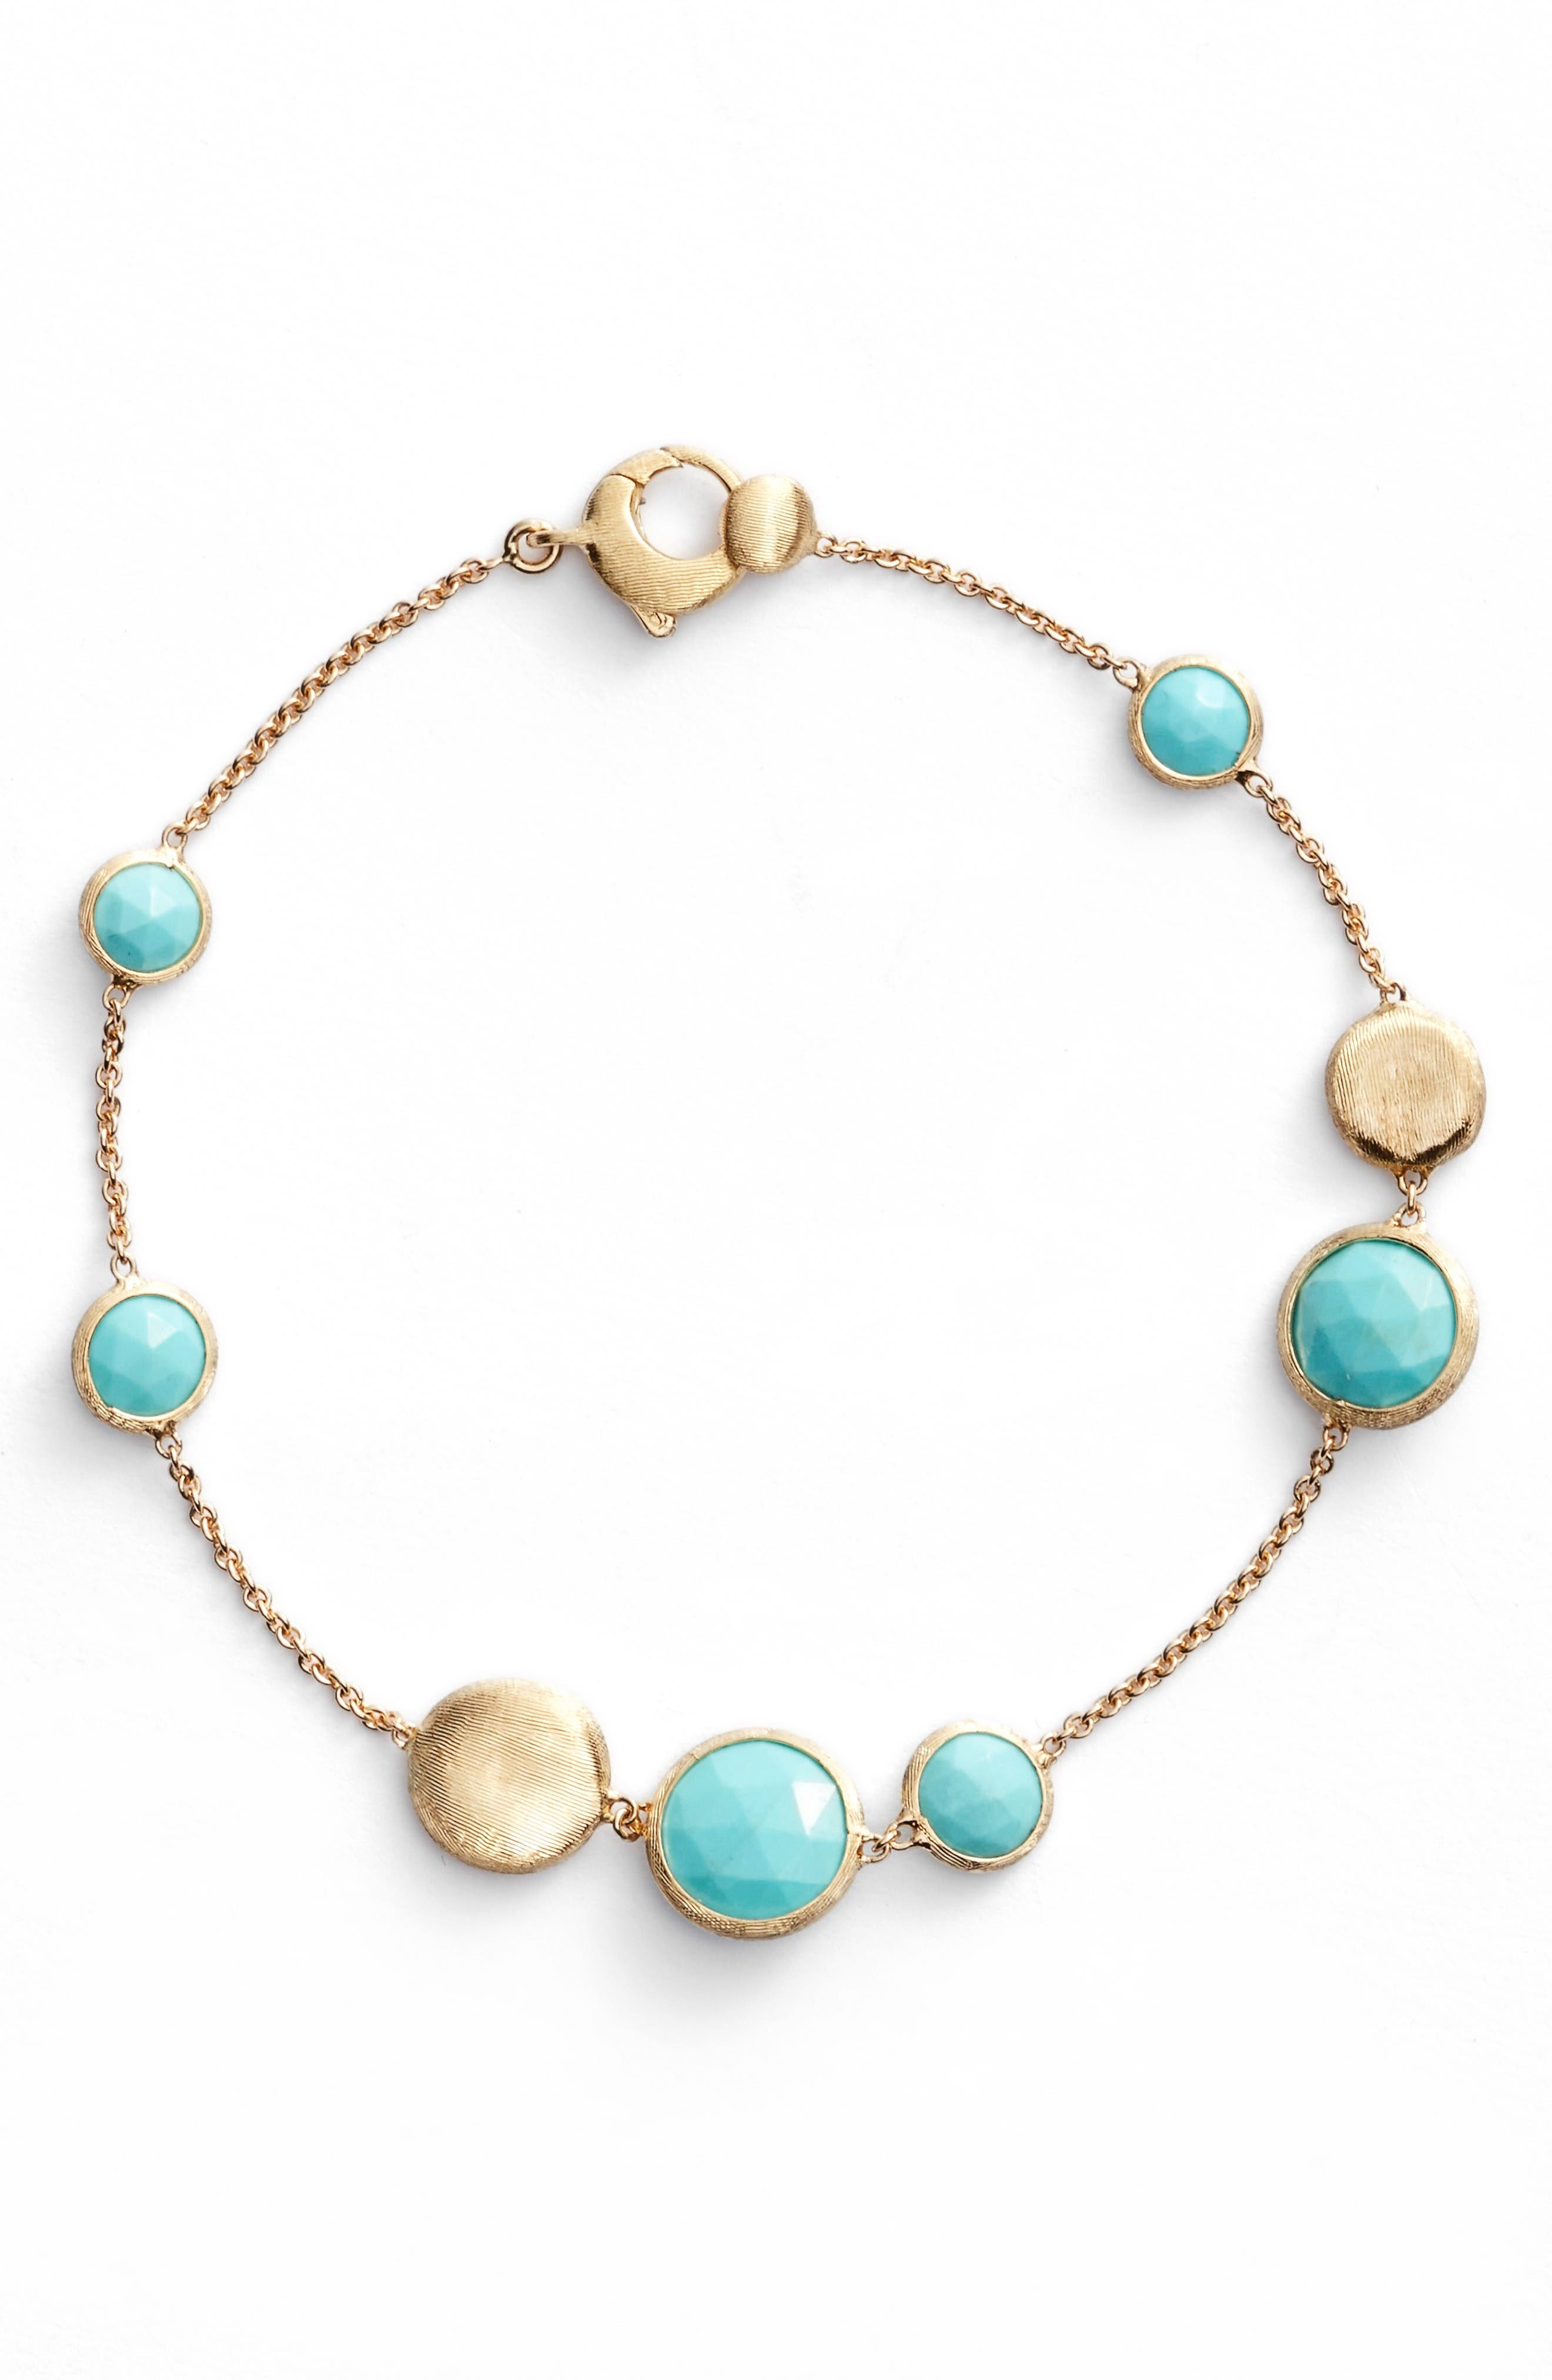 Jaipur Turquoise Bracelet,                         Main,                         color, Yellow Gold/ Turquoise